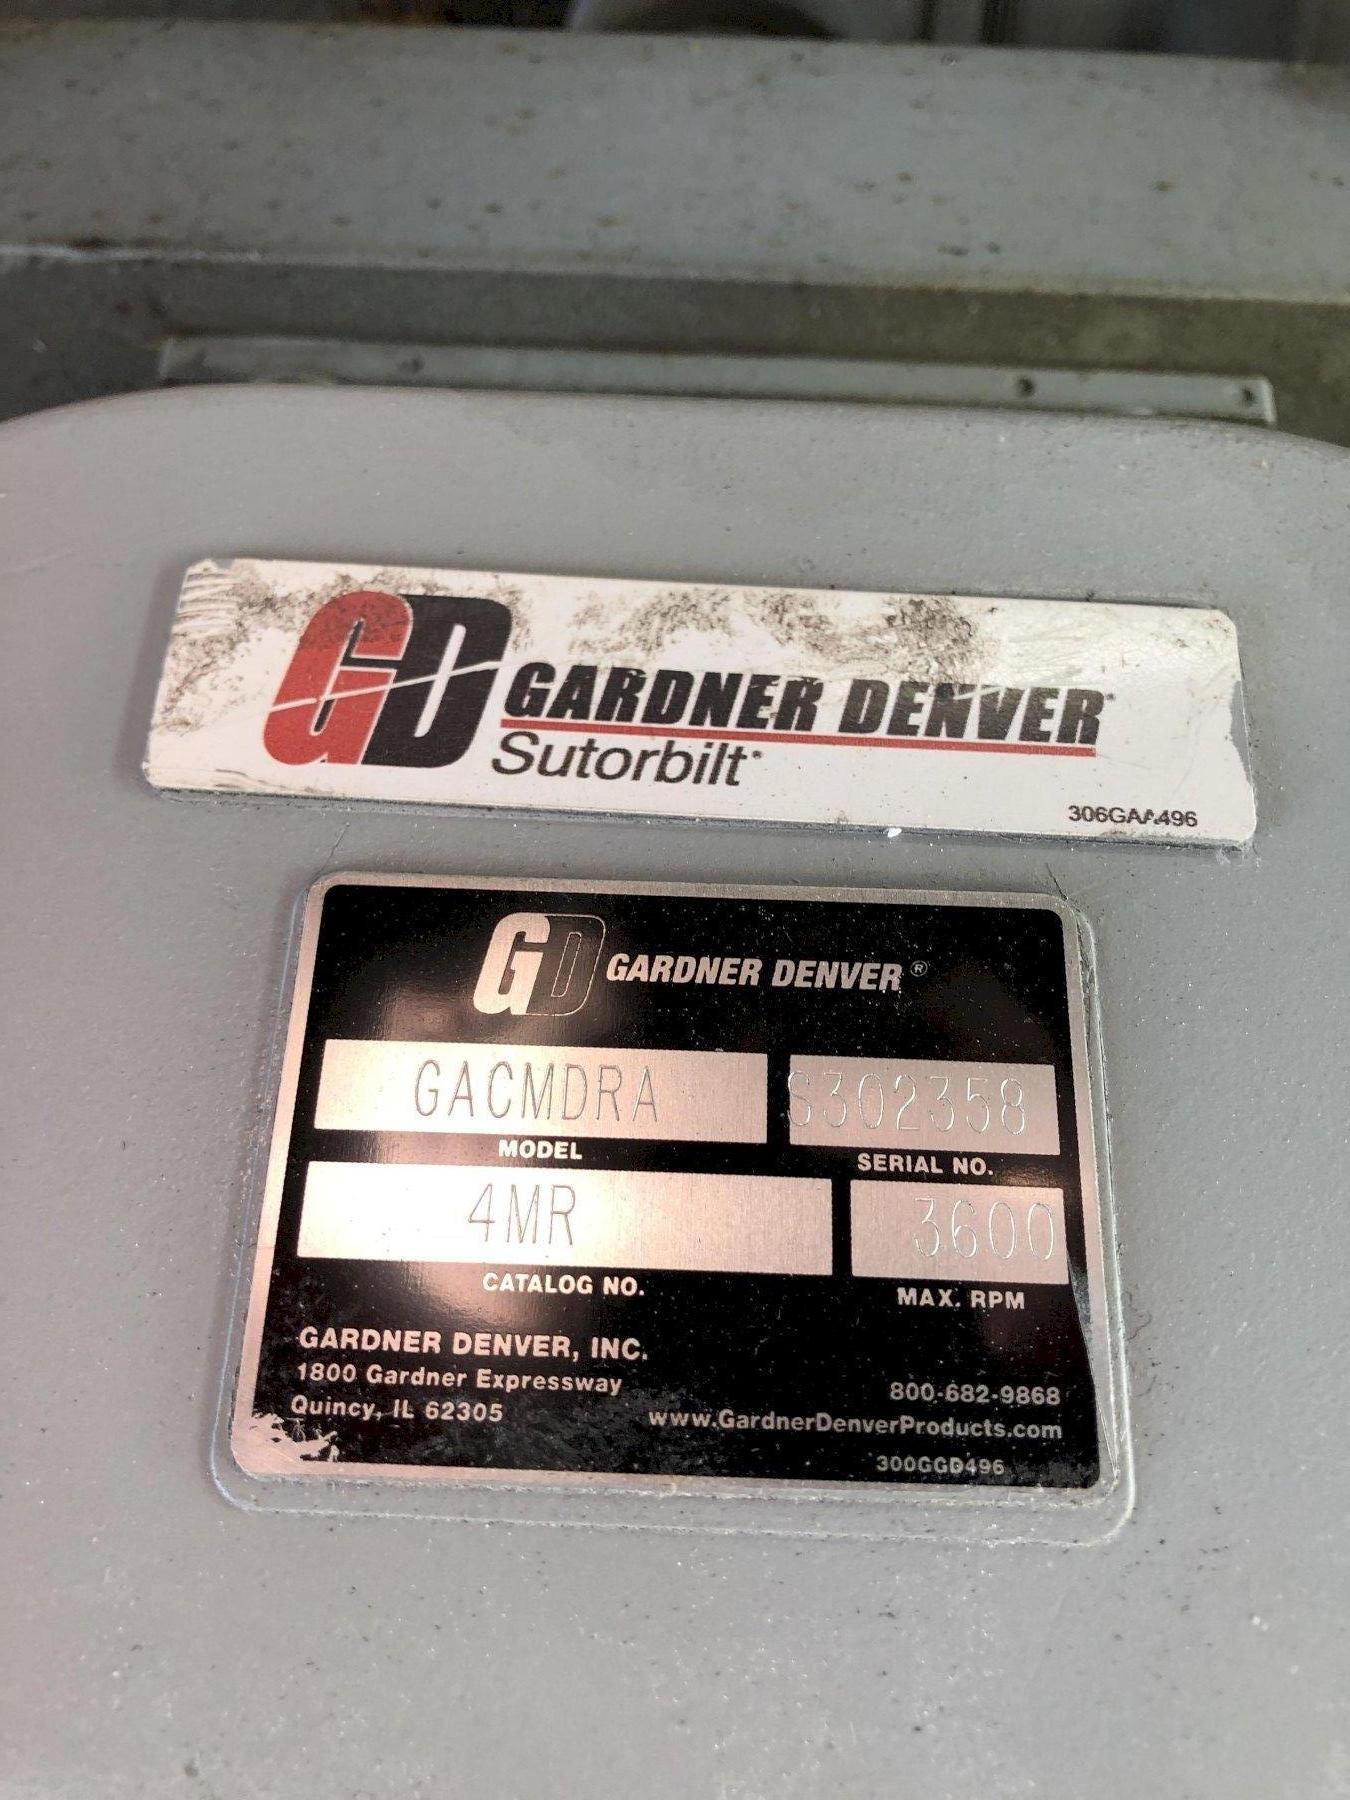 2009 Gardner Denver Sutorbilt model gacmdra blower s/n s302358 with 20 hp motor